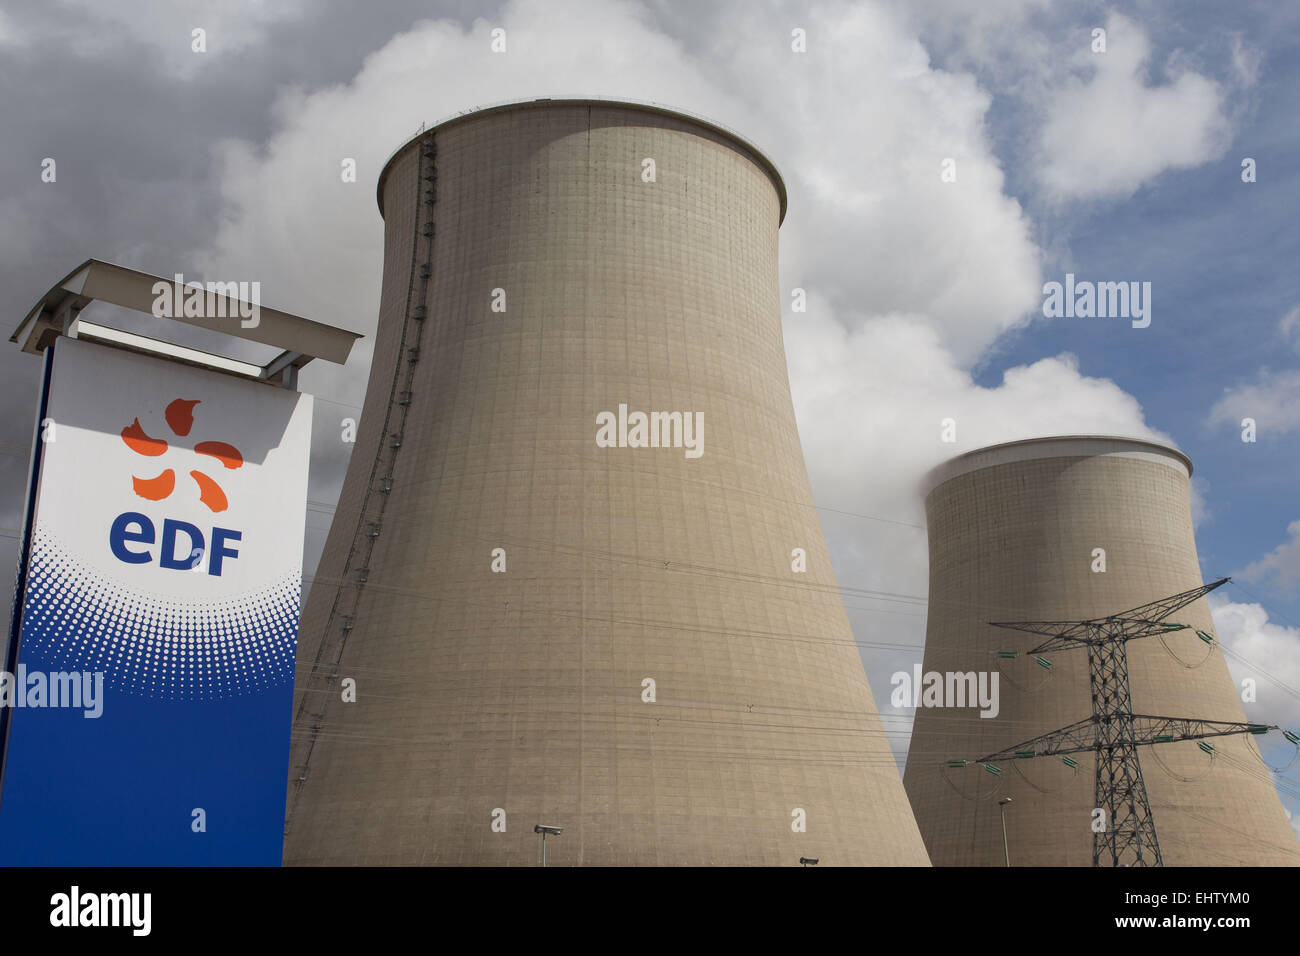 ILLUSTRATION OF NUCLEAR ENERGY, NUCLEAR POWER PLANT OF NOGENT-SUR-SEINE, AUBE (10), CHAMPAGNE-ARDENNE, FRANCE - Stock Image